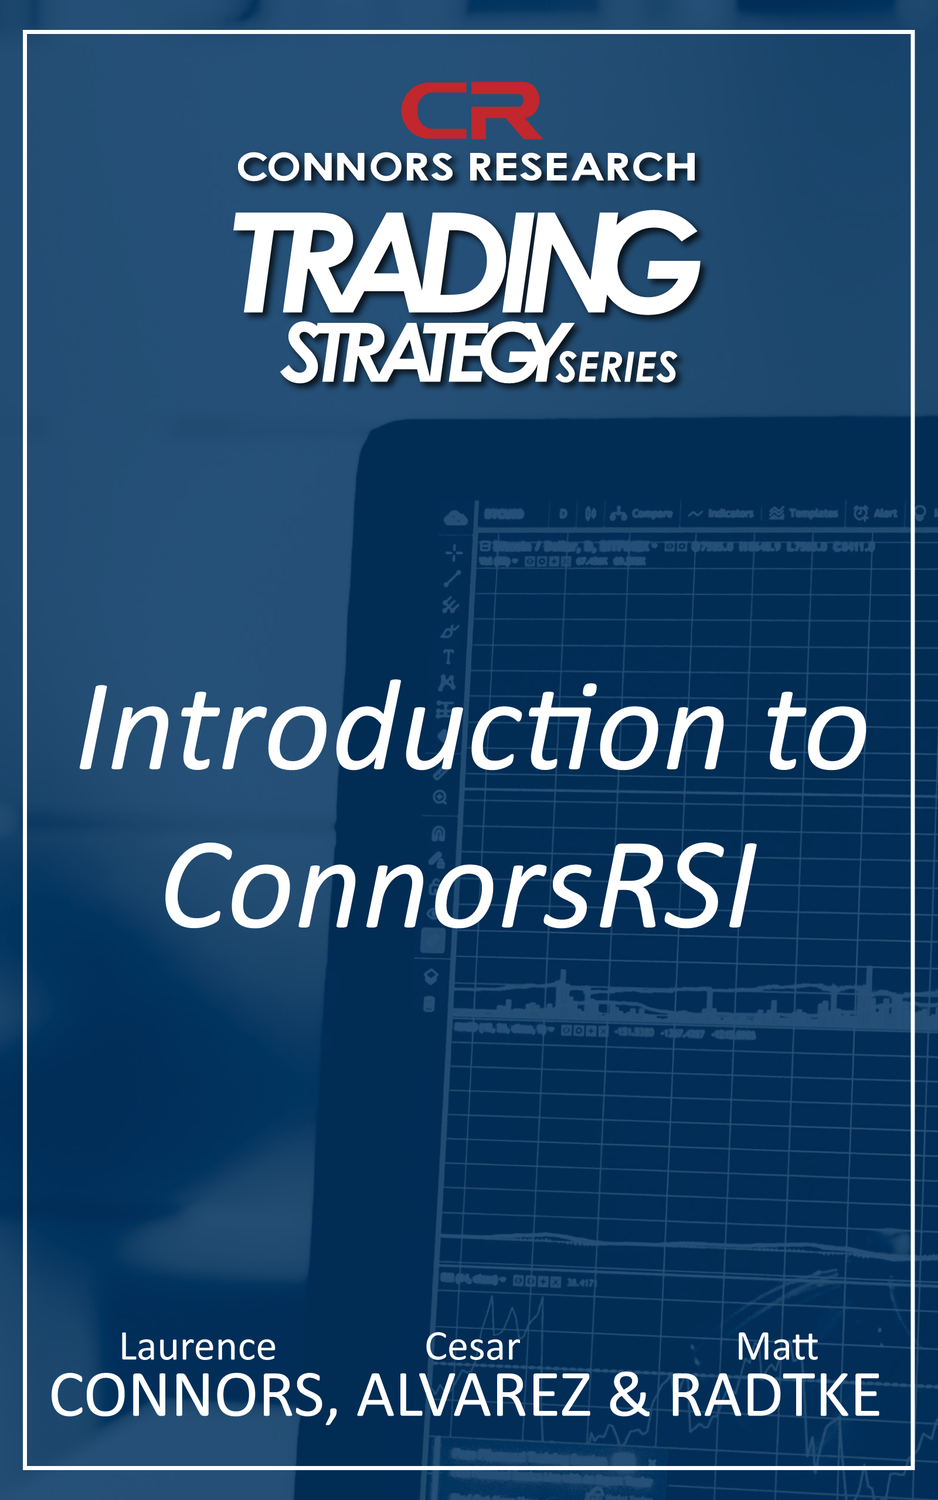 Connors Research Trading Strategy Series: An Introduction to ConnorsRSI